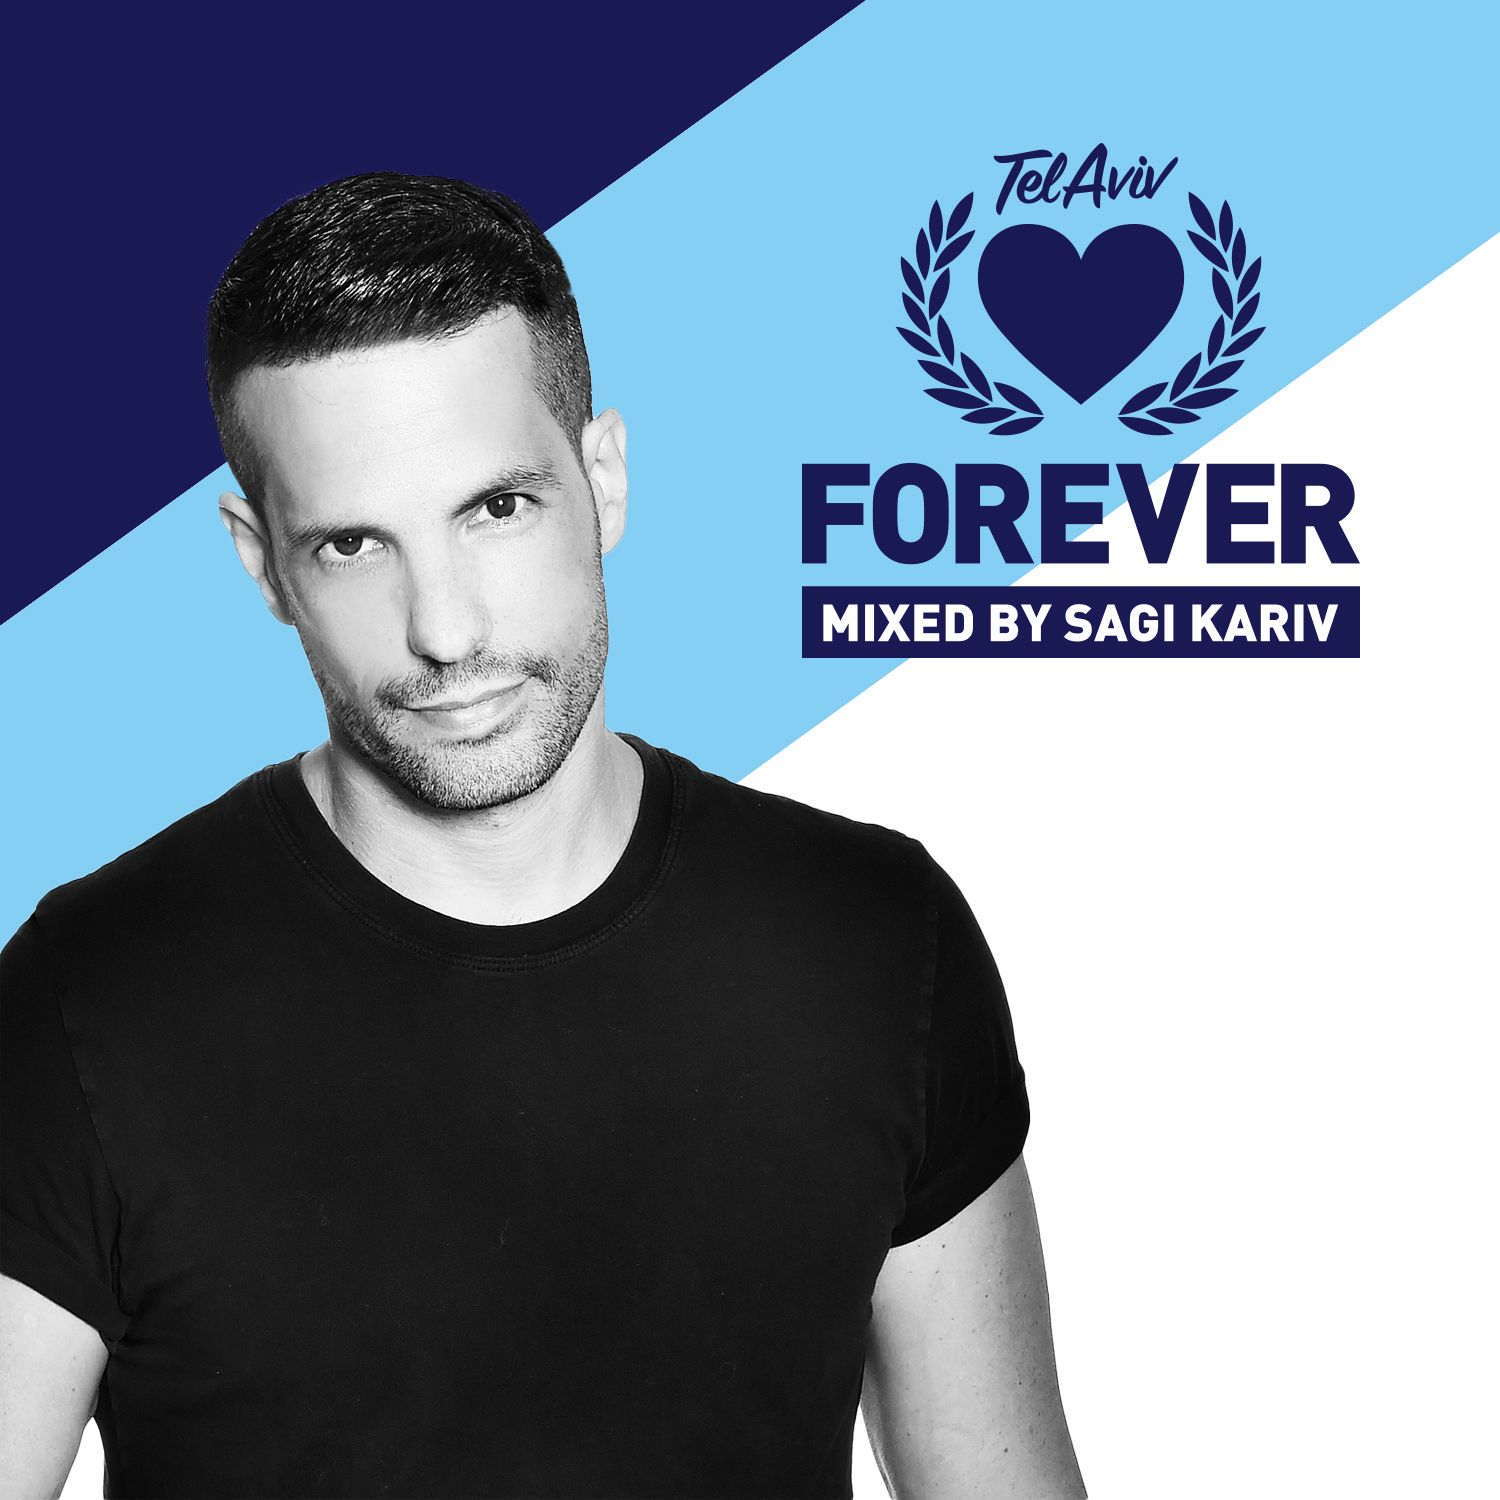 Forever Tel Aviv Mixed With Love By Sagi Kariv